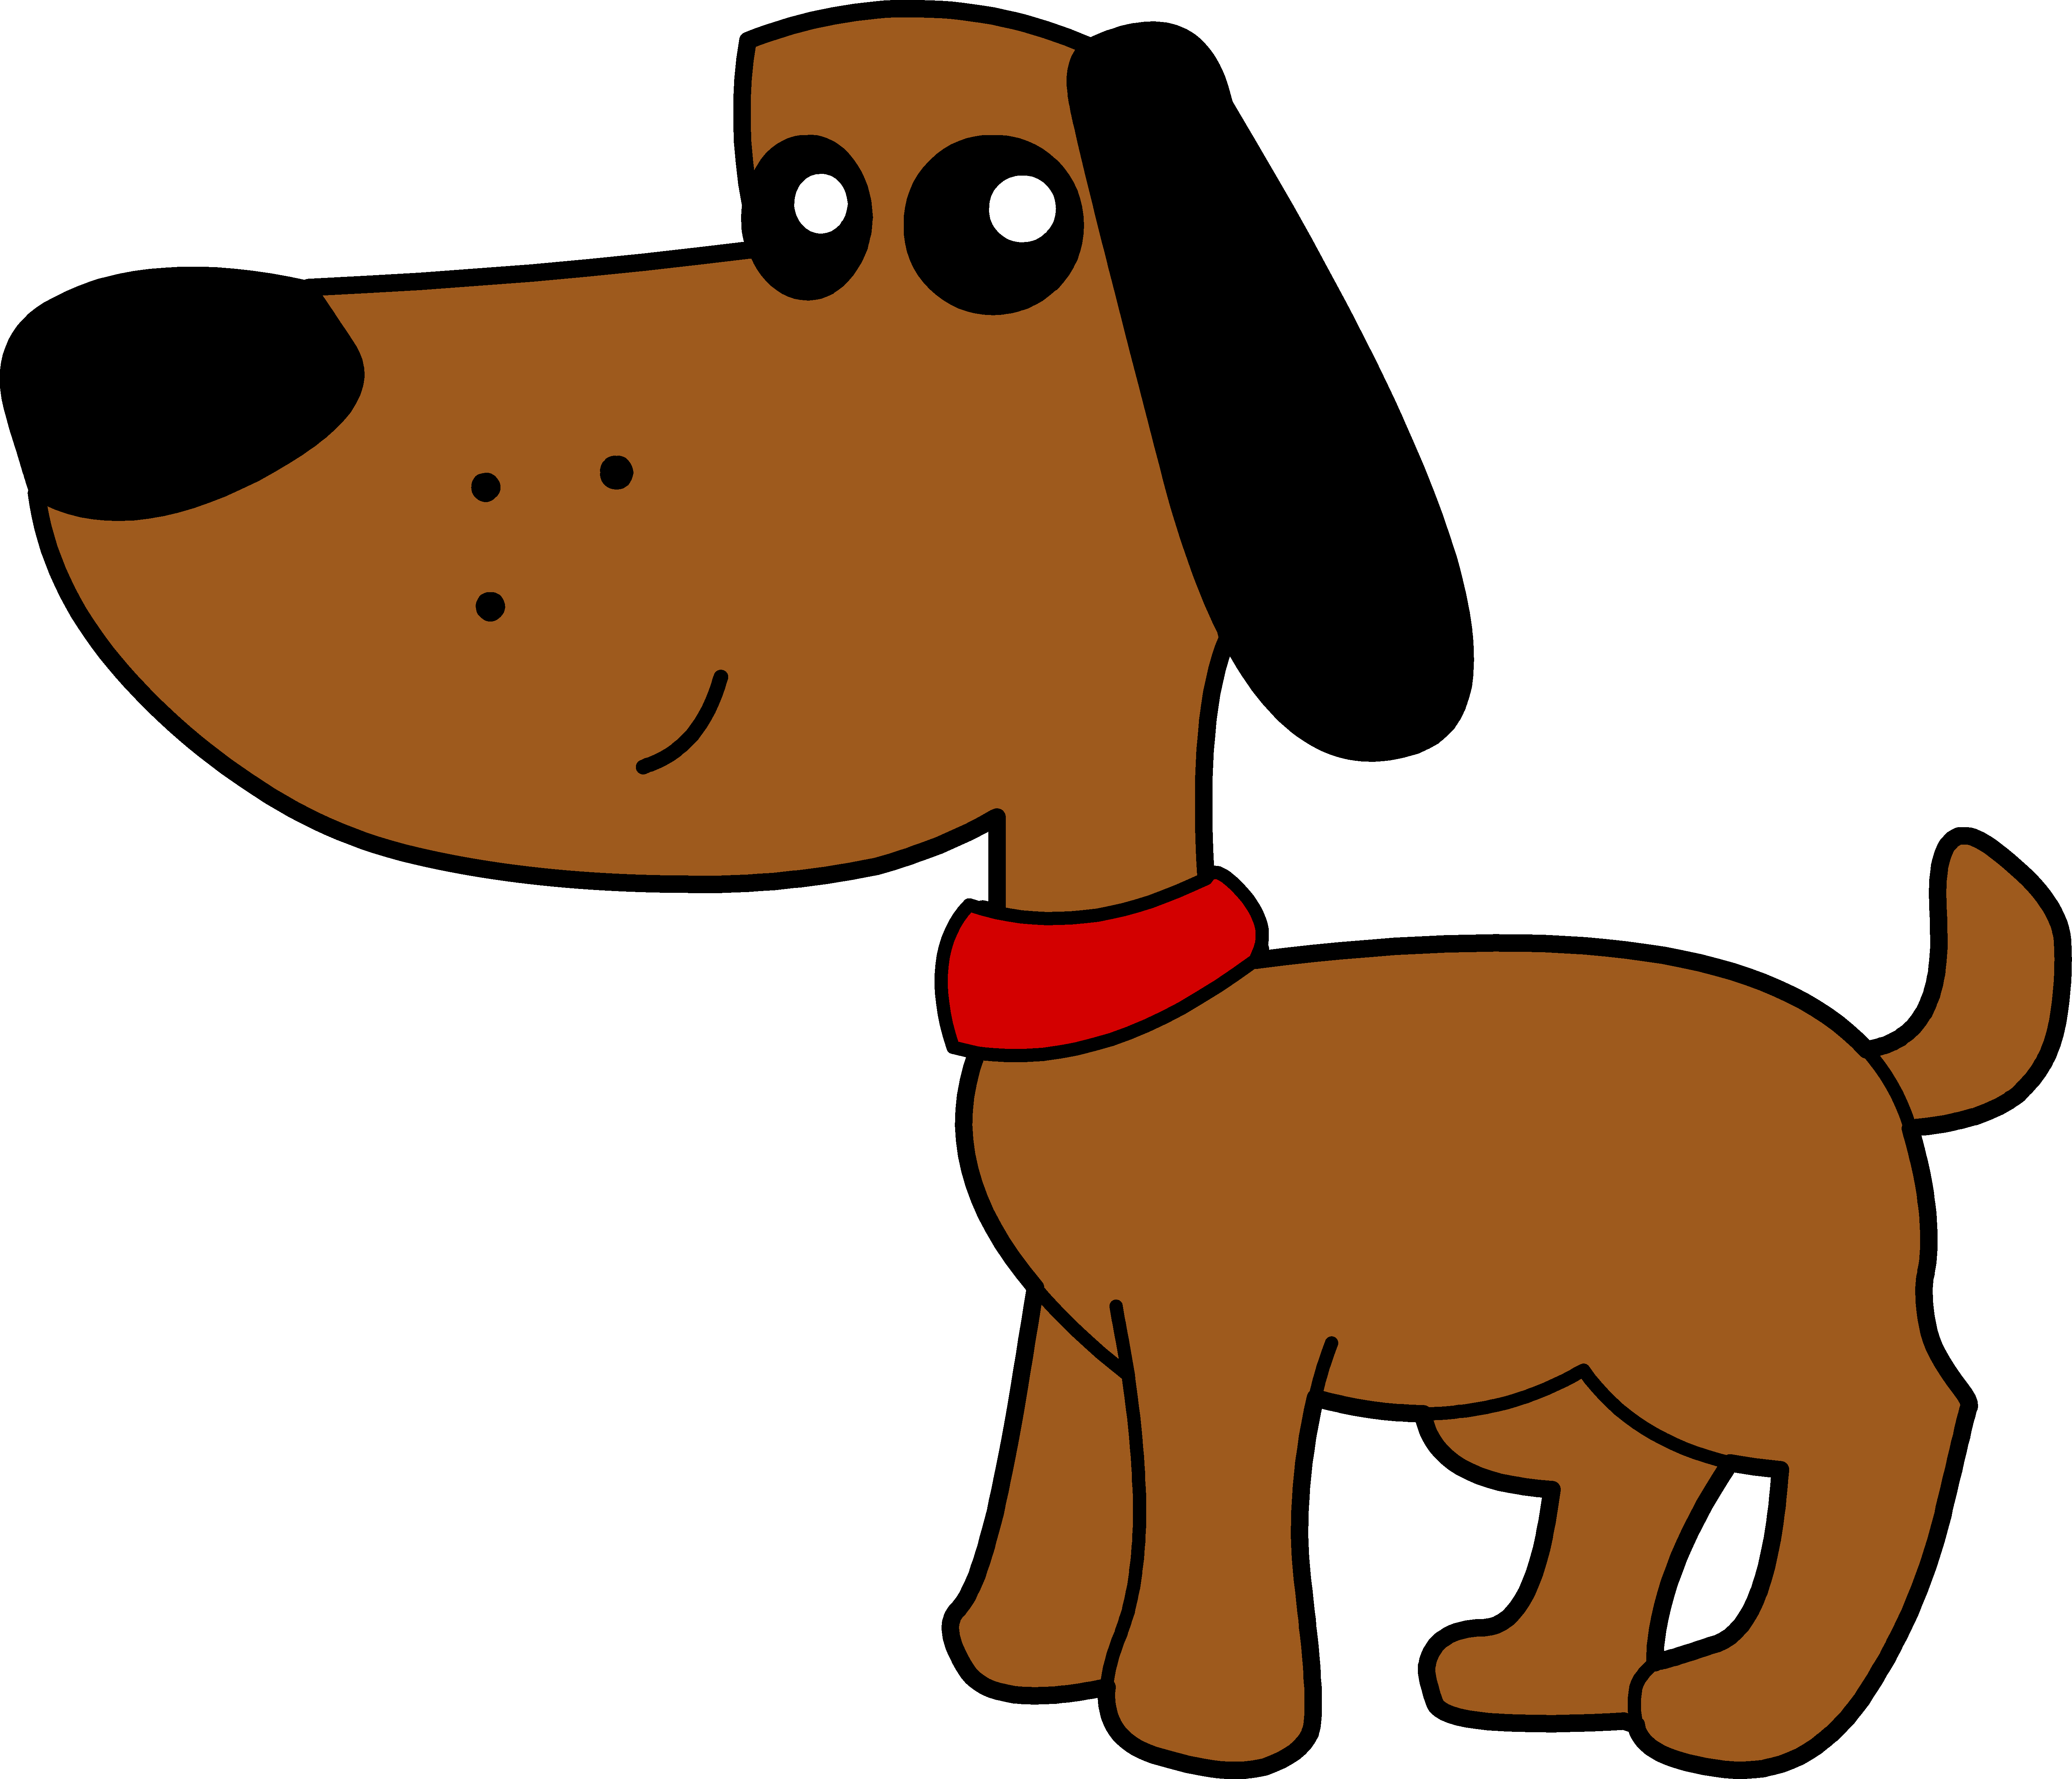 ... dog-clipartcute-brown-dog-with-red-collar---free-clip-art-tsitailf.png